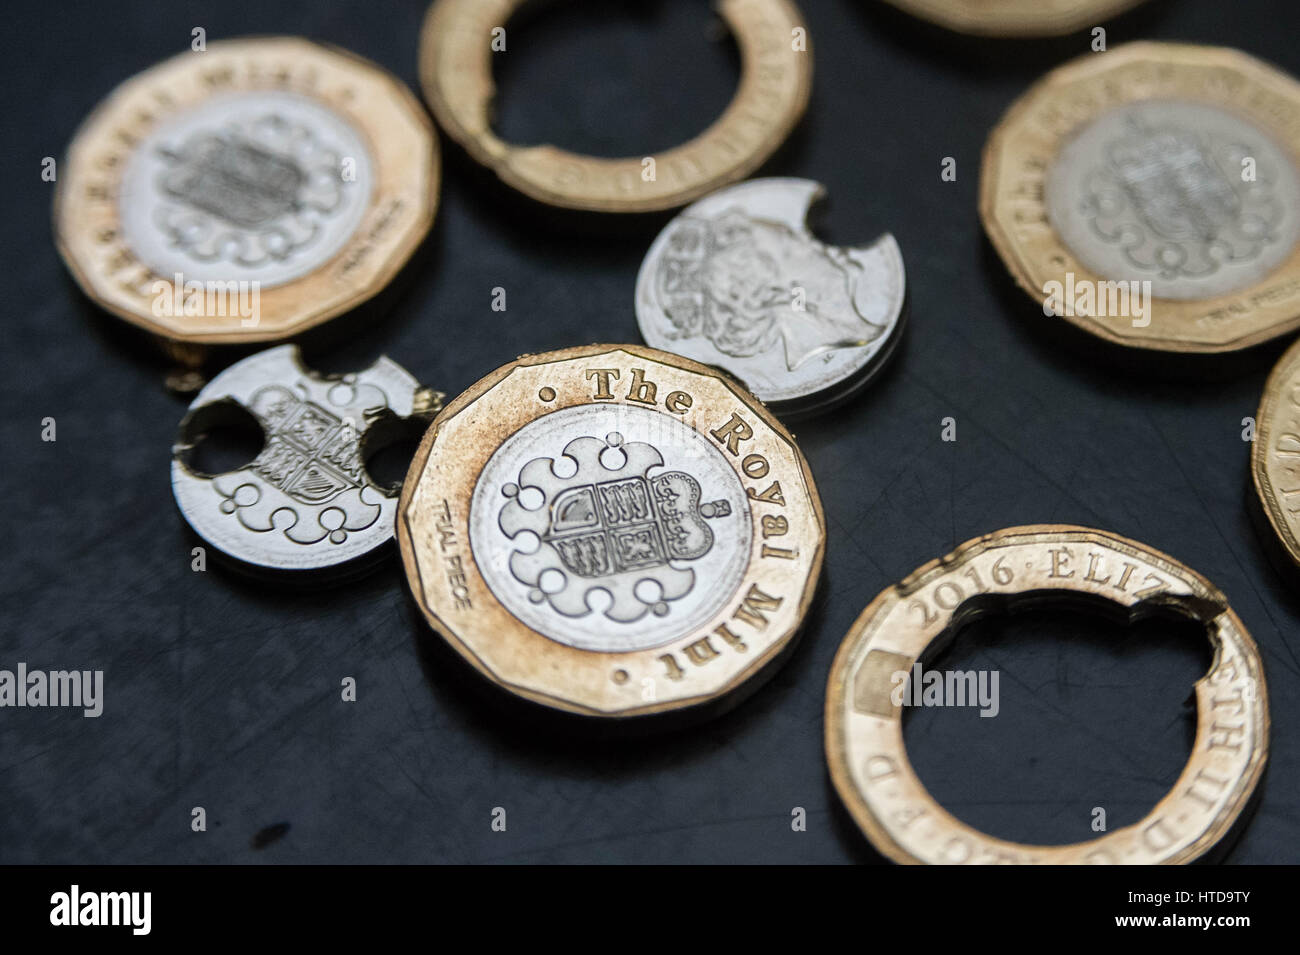 London, UK. 9th Mar, 2017. New £1 coins tested in the London Assay office ahead of their release 28th March, - Stock Image